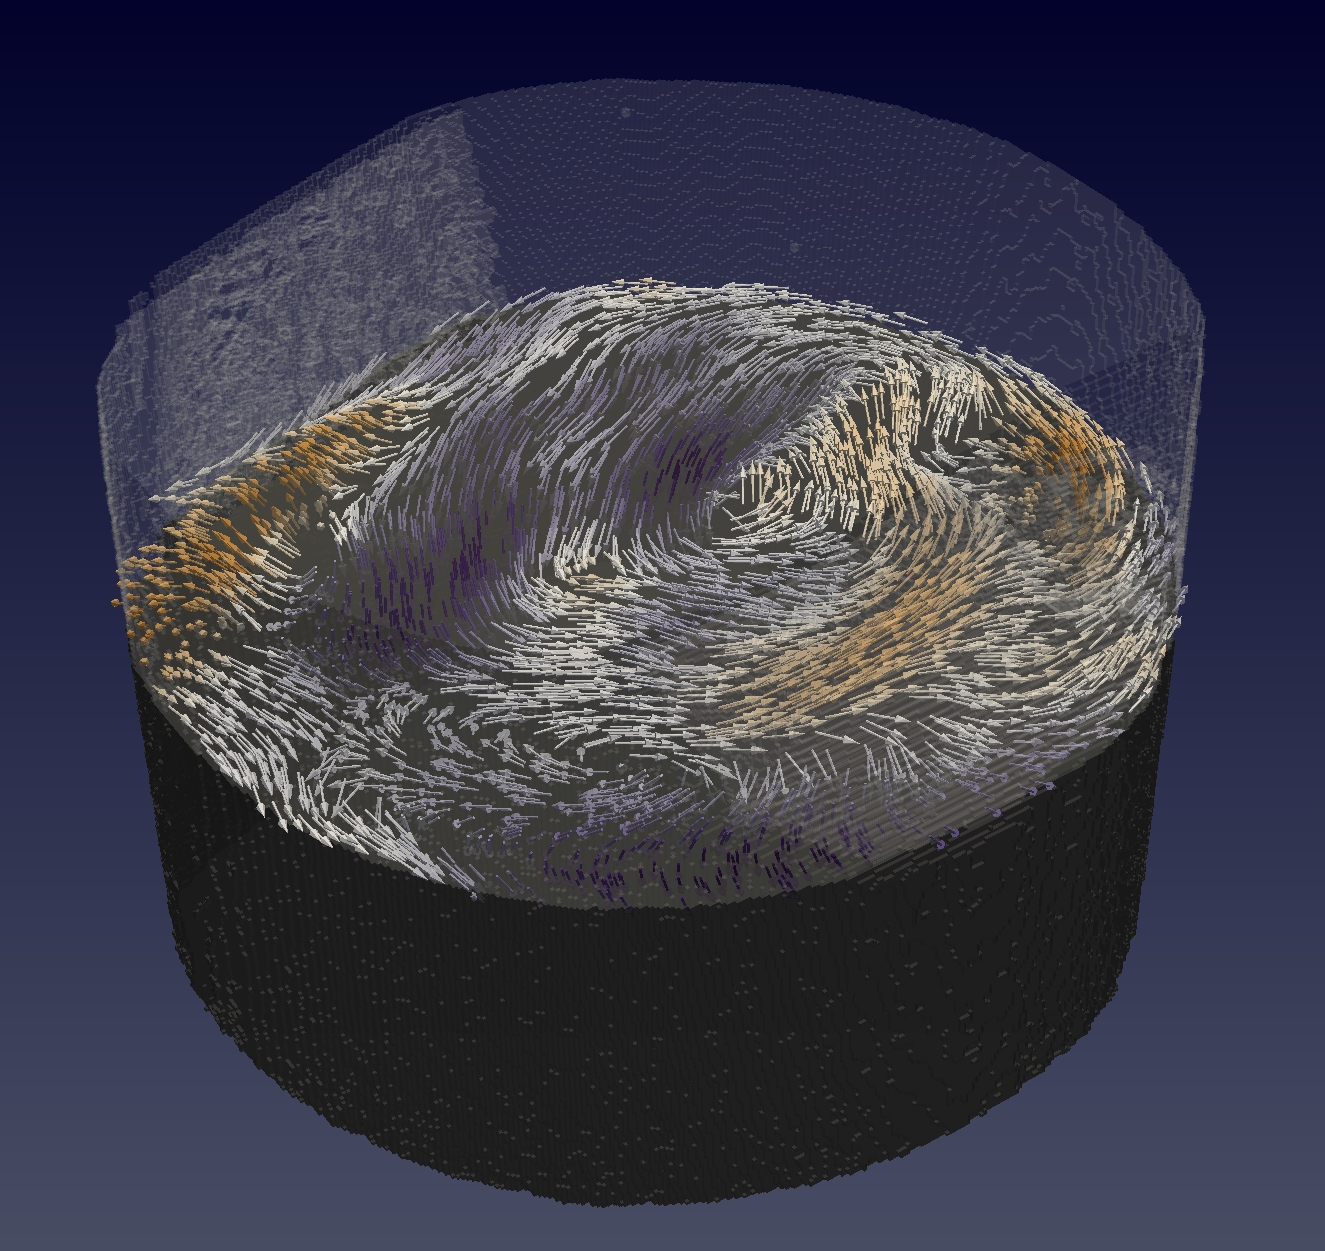 Swirling internal magnetic structure. A section of the investigated sample, which is a gadolinium-cobalt pillar of diameter 0.005 millimetres (5 micrometres), is shown. With magnetic tomography, scientists determined its internal magnetic structure. Here, the magnetisation is represented by arrows for a horizontal slice within the pillar. In addition, the colour of the arrows indicate whether they are pointing upwards (orange) or downwards (purple). (Graphics: Paul Scherrer Institute/Claire Donnelly)